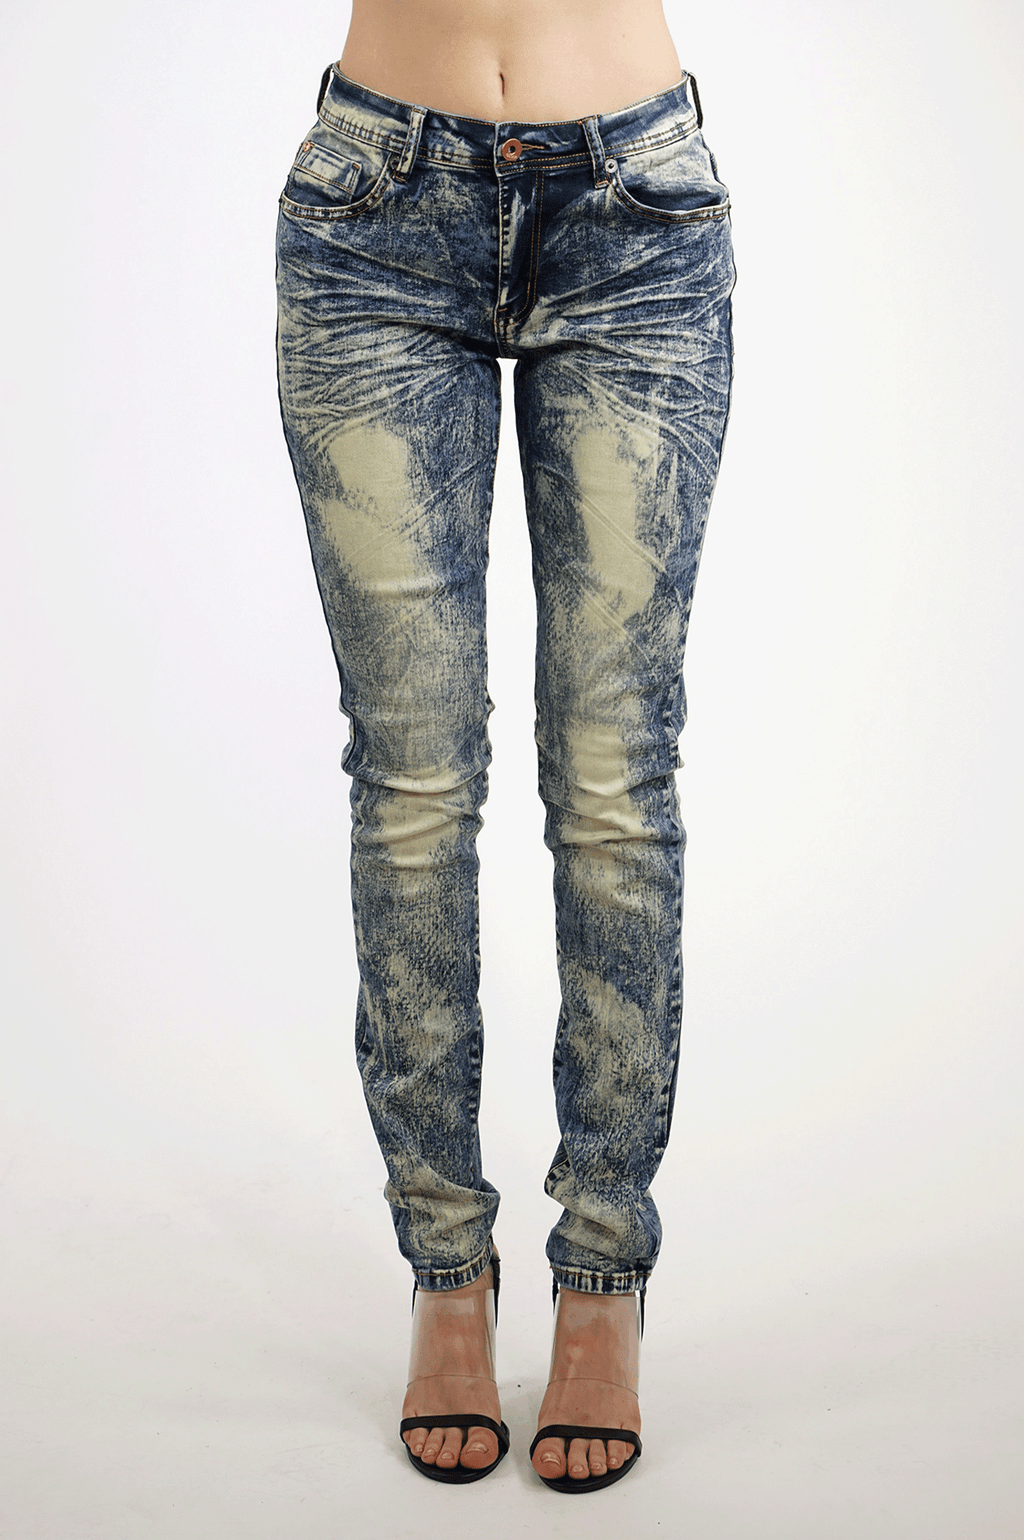 AAO FASHION WOMENS VINTAGE DENIM PANTS